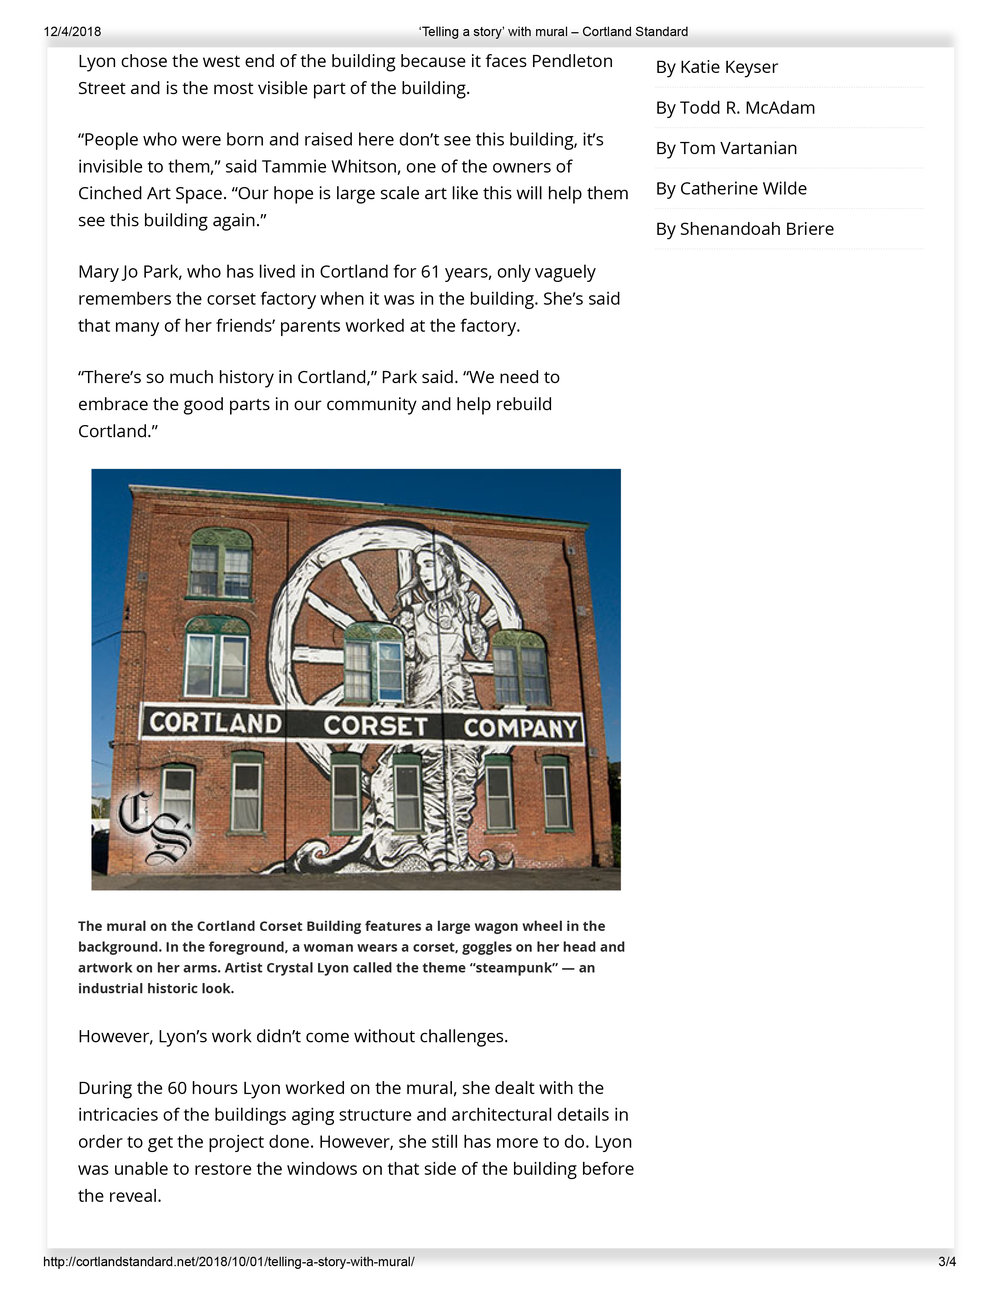 'Telling a story' with mural – Cortland Standard-3.jpg